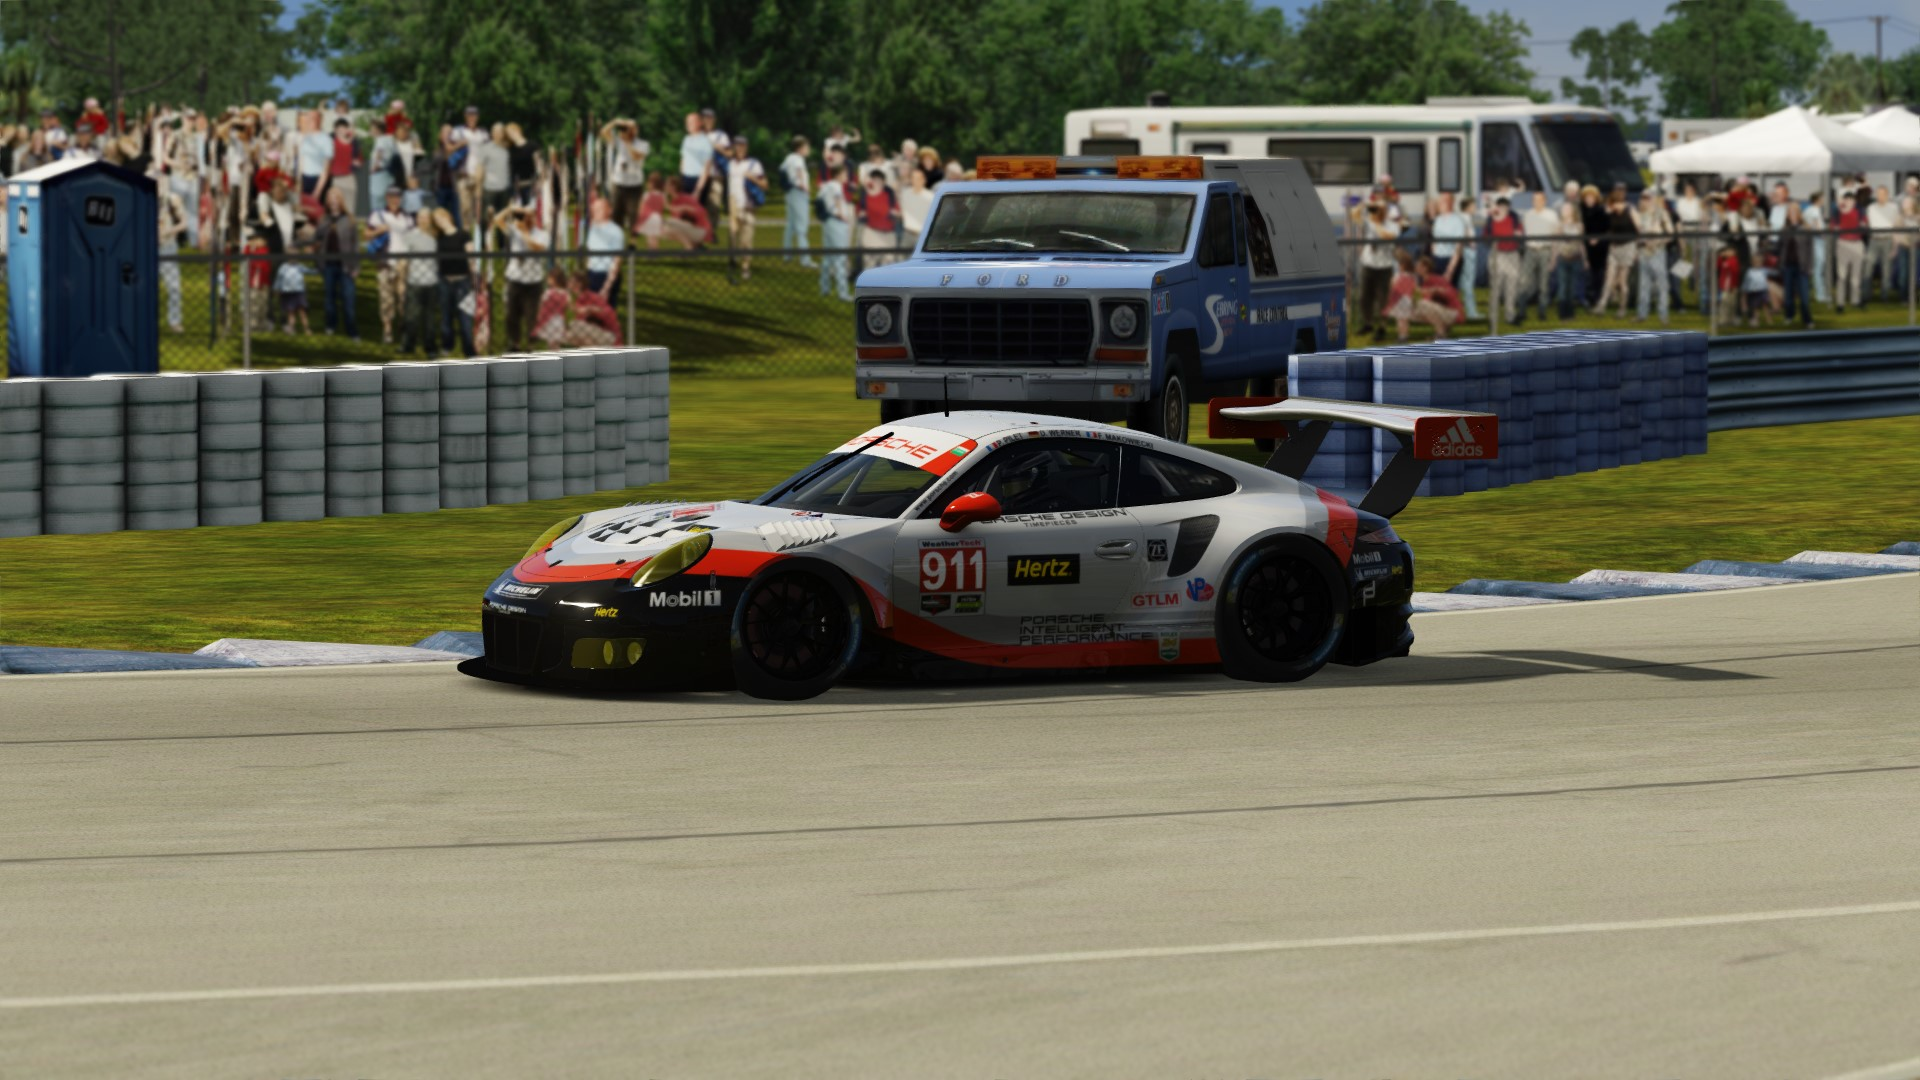 Screenshot_ks_porsche_911_gt3_r_2016_sebring_19-3-117-20-20-2.jpg